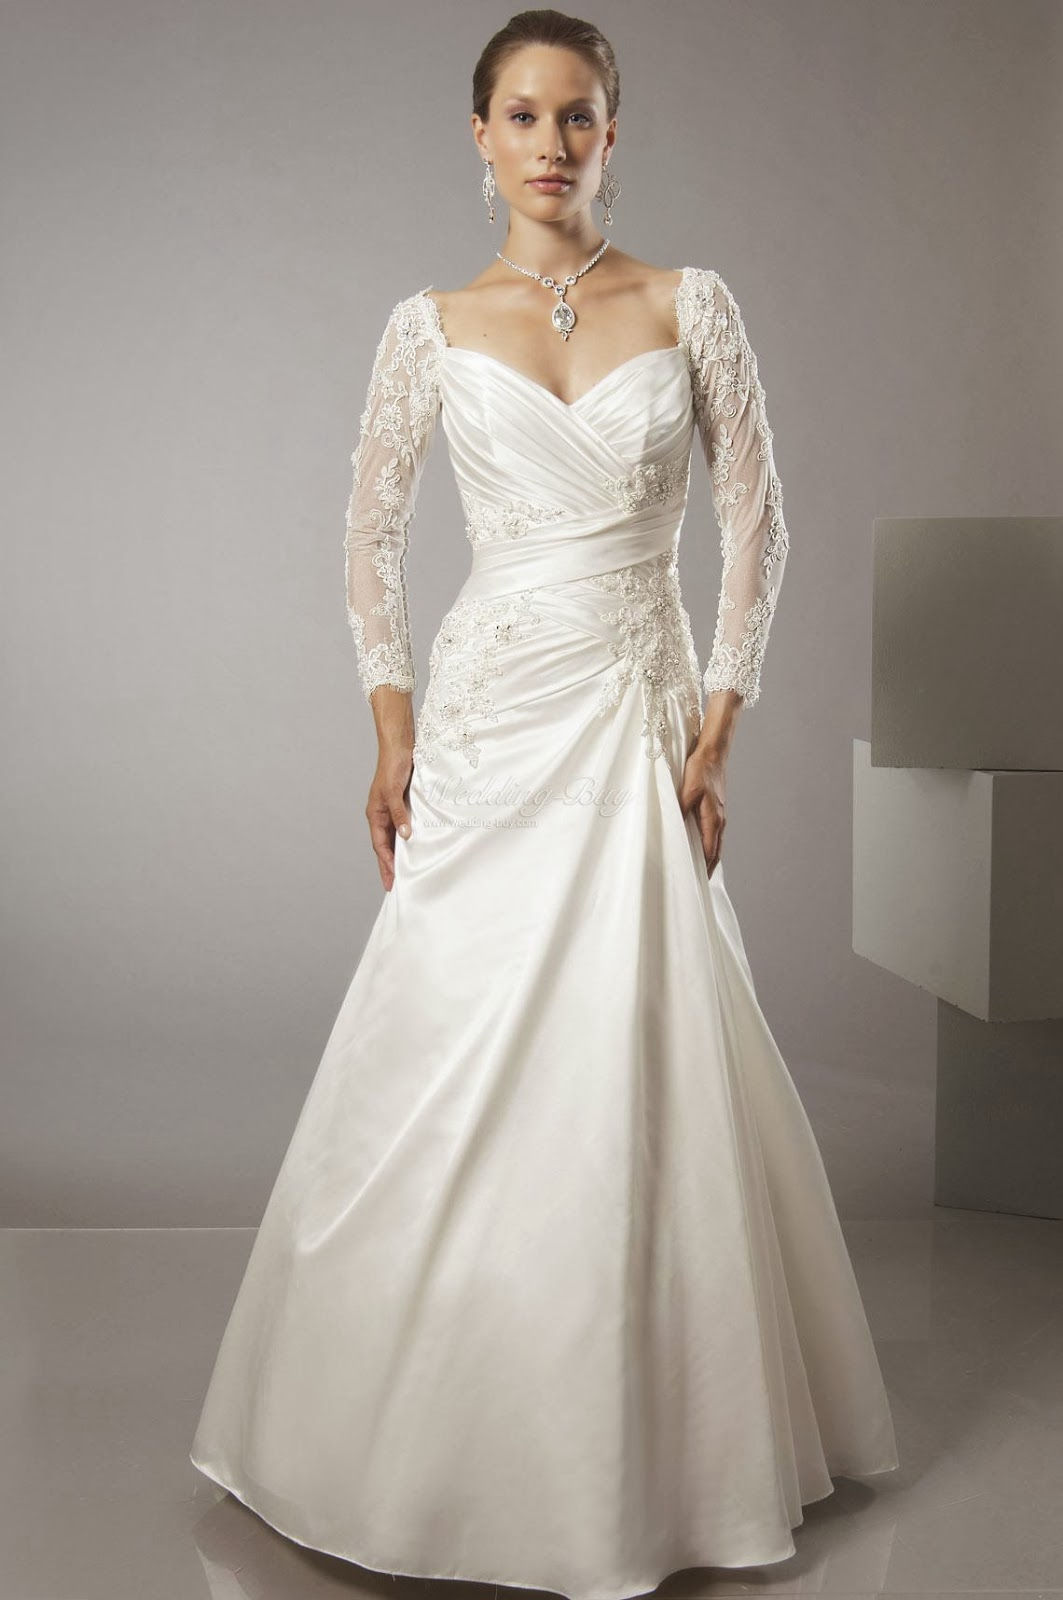 Merveilleux Wedding Dress Collections   Blogspot